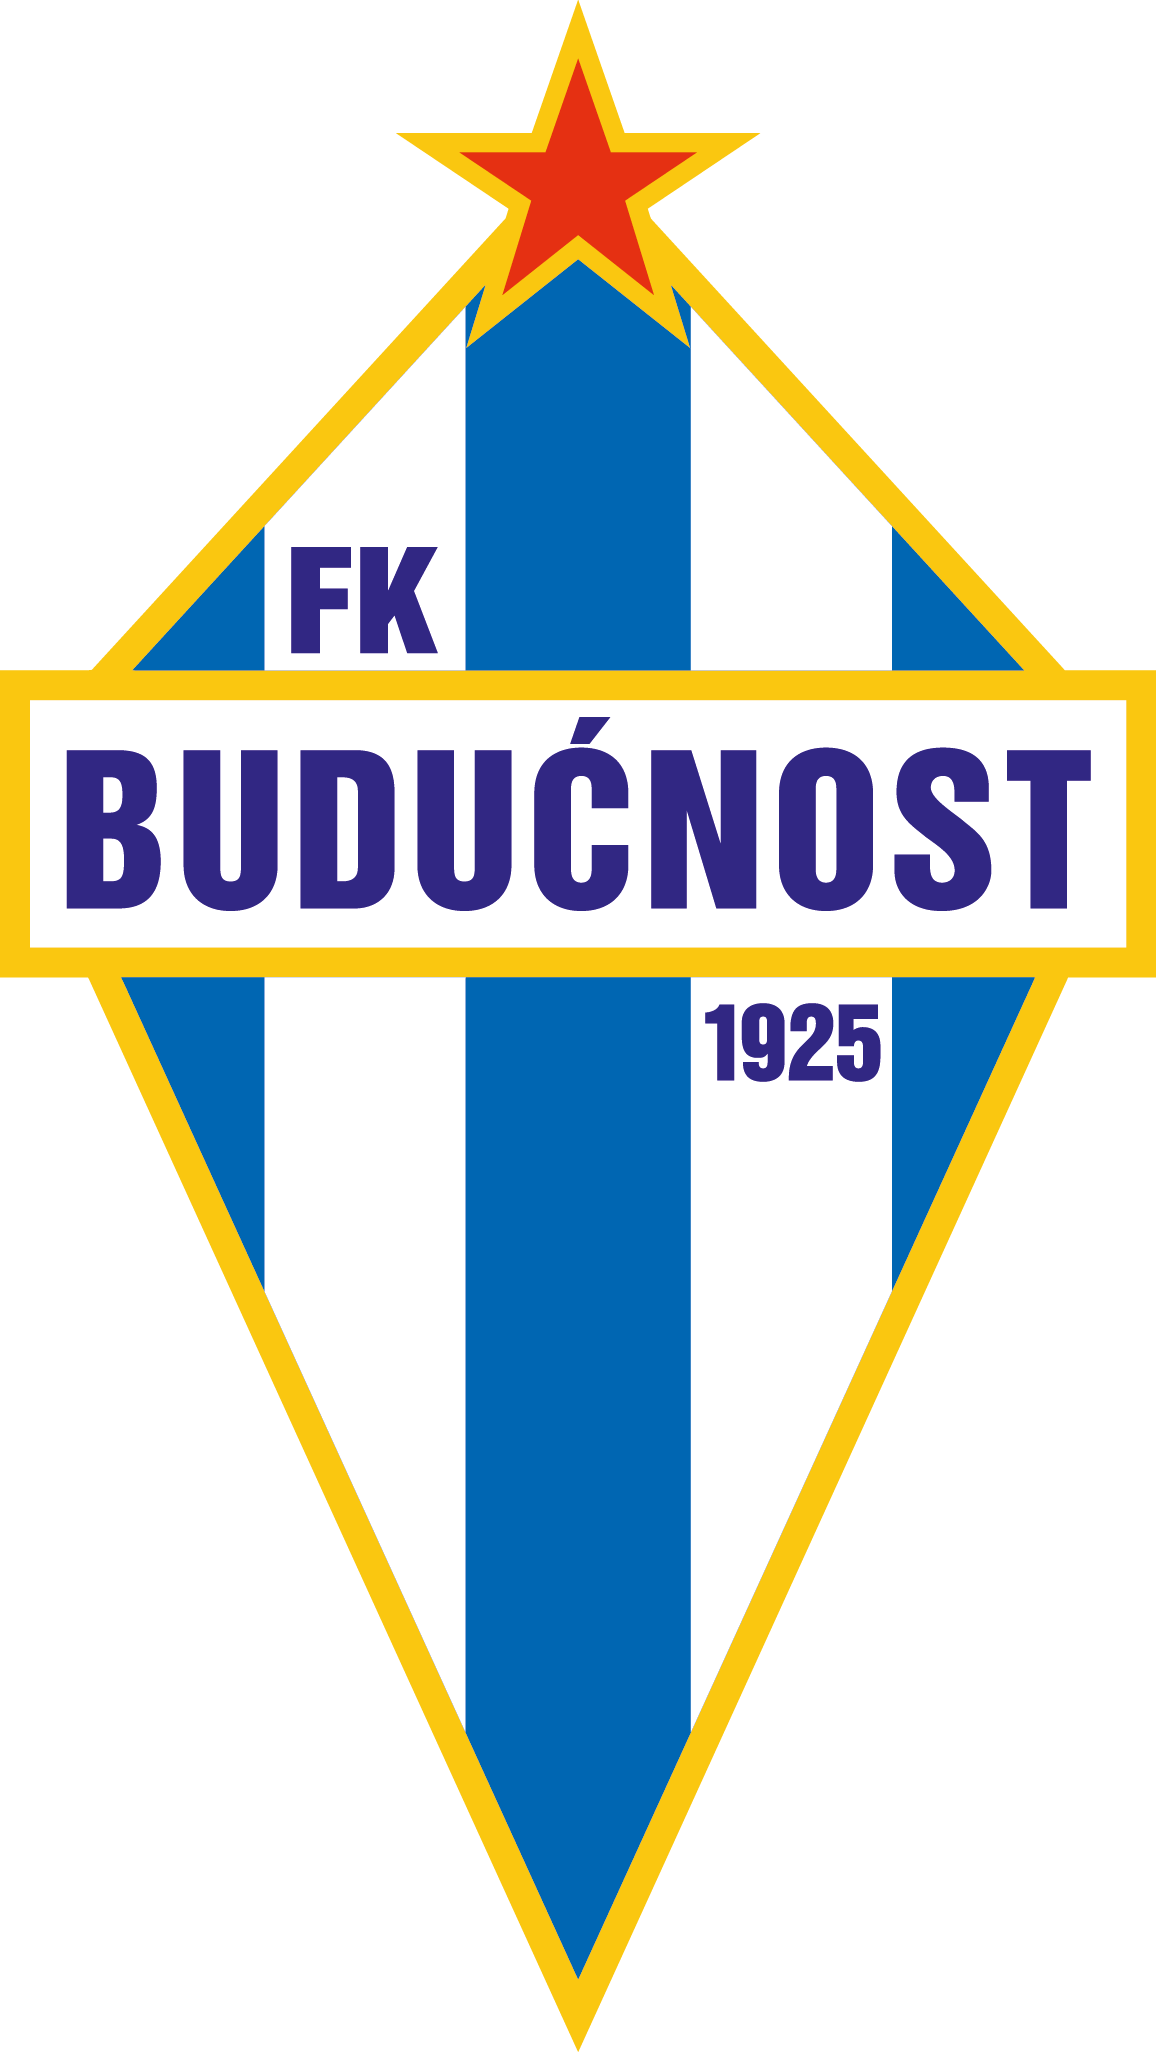 Football lines clipart picture library download FK Buducnost Podgorica | Football Logos | Pinterest picture library download